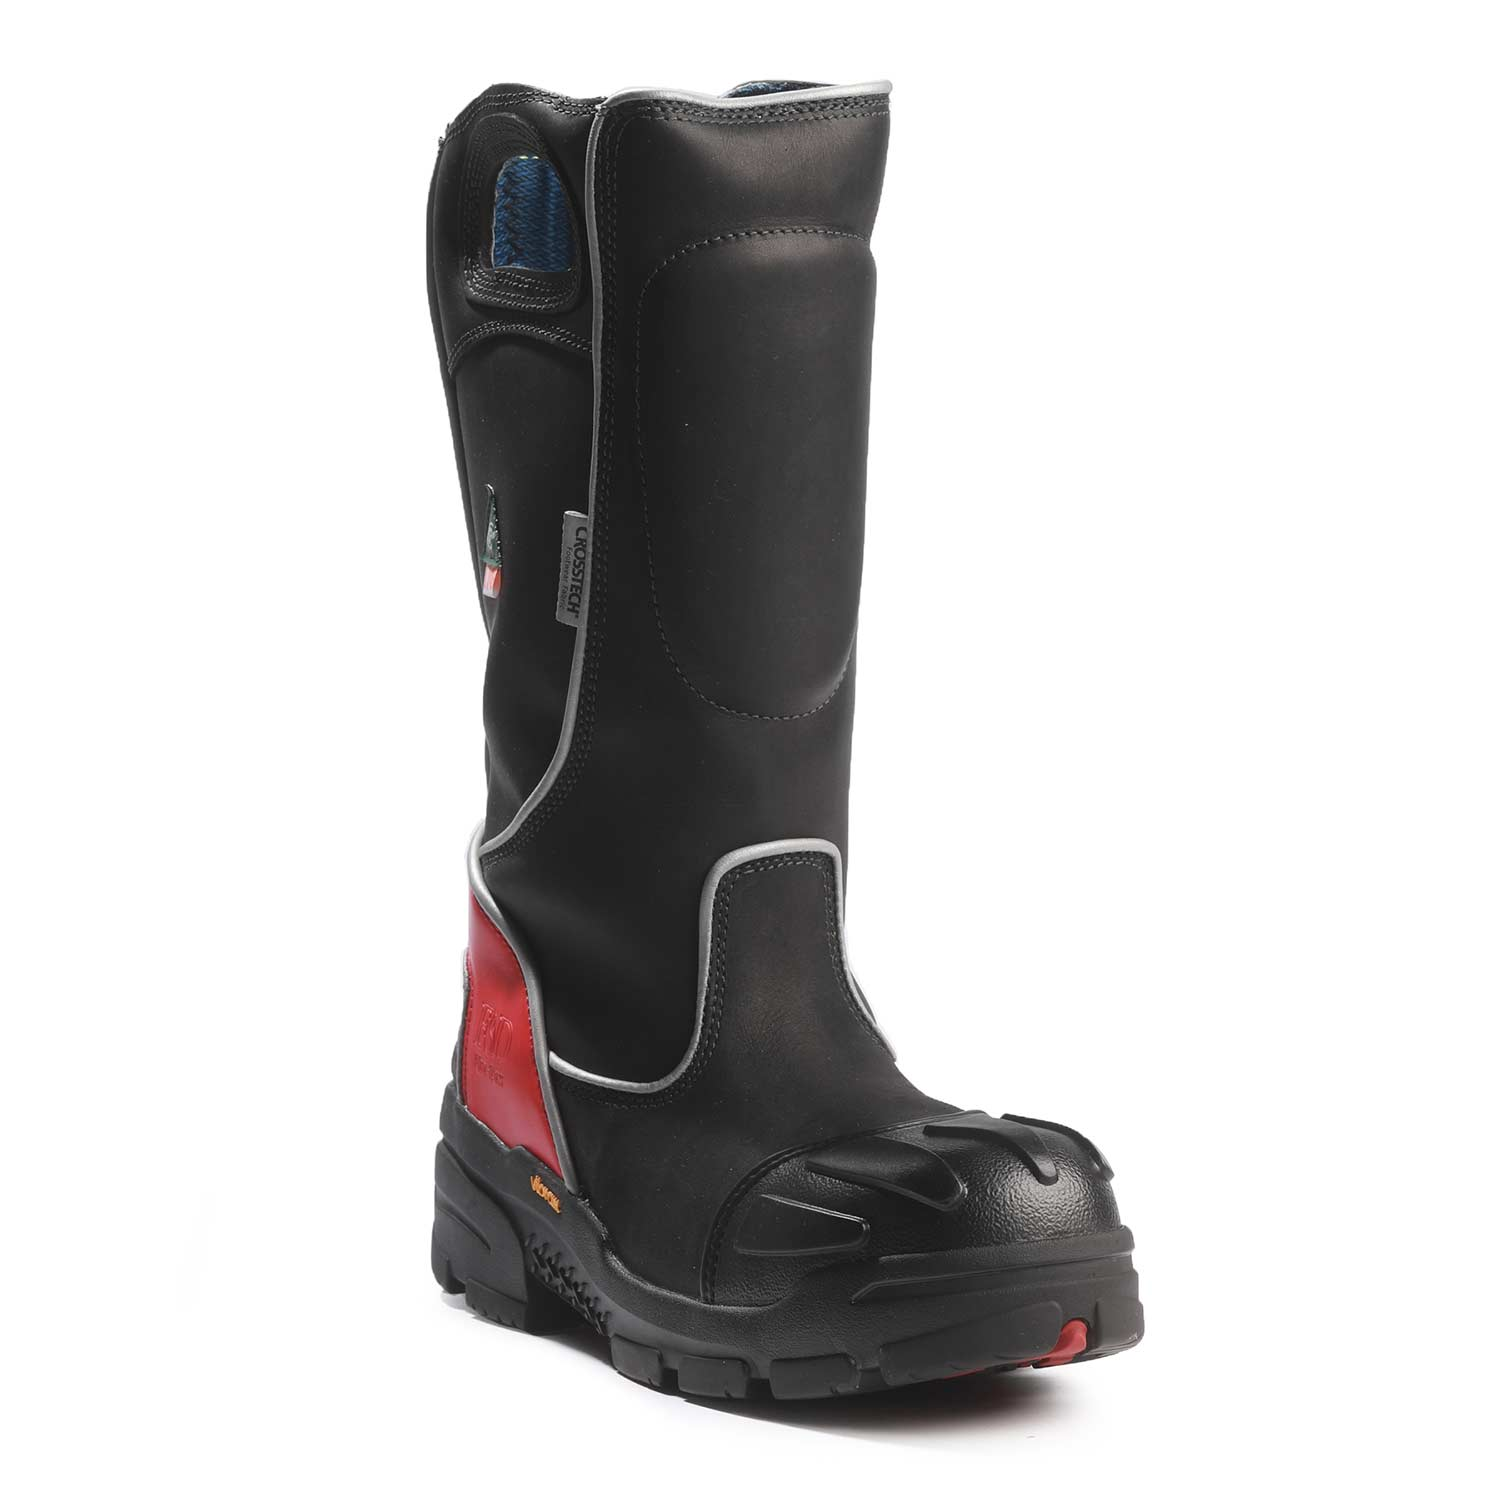 Fire-Dex Leather Structural Fire Boot